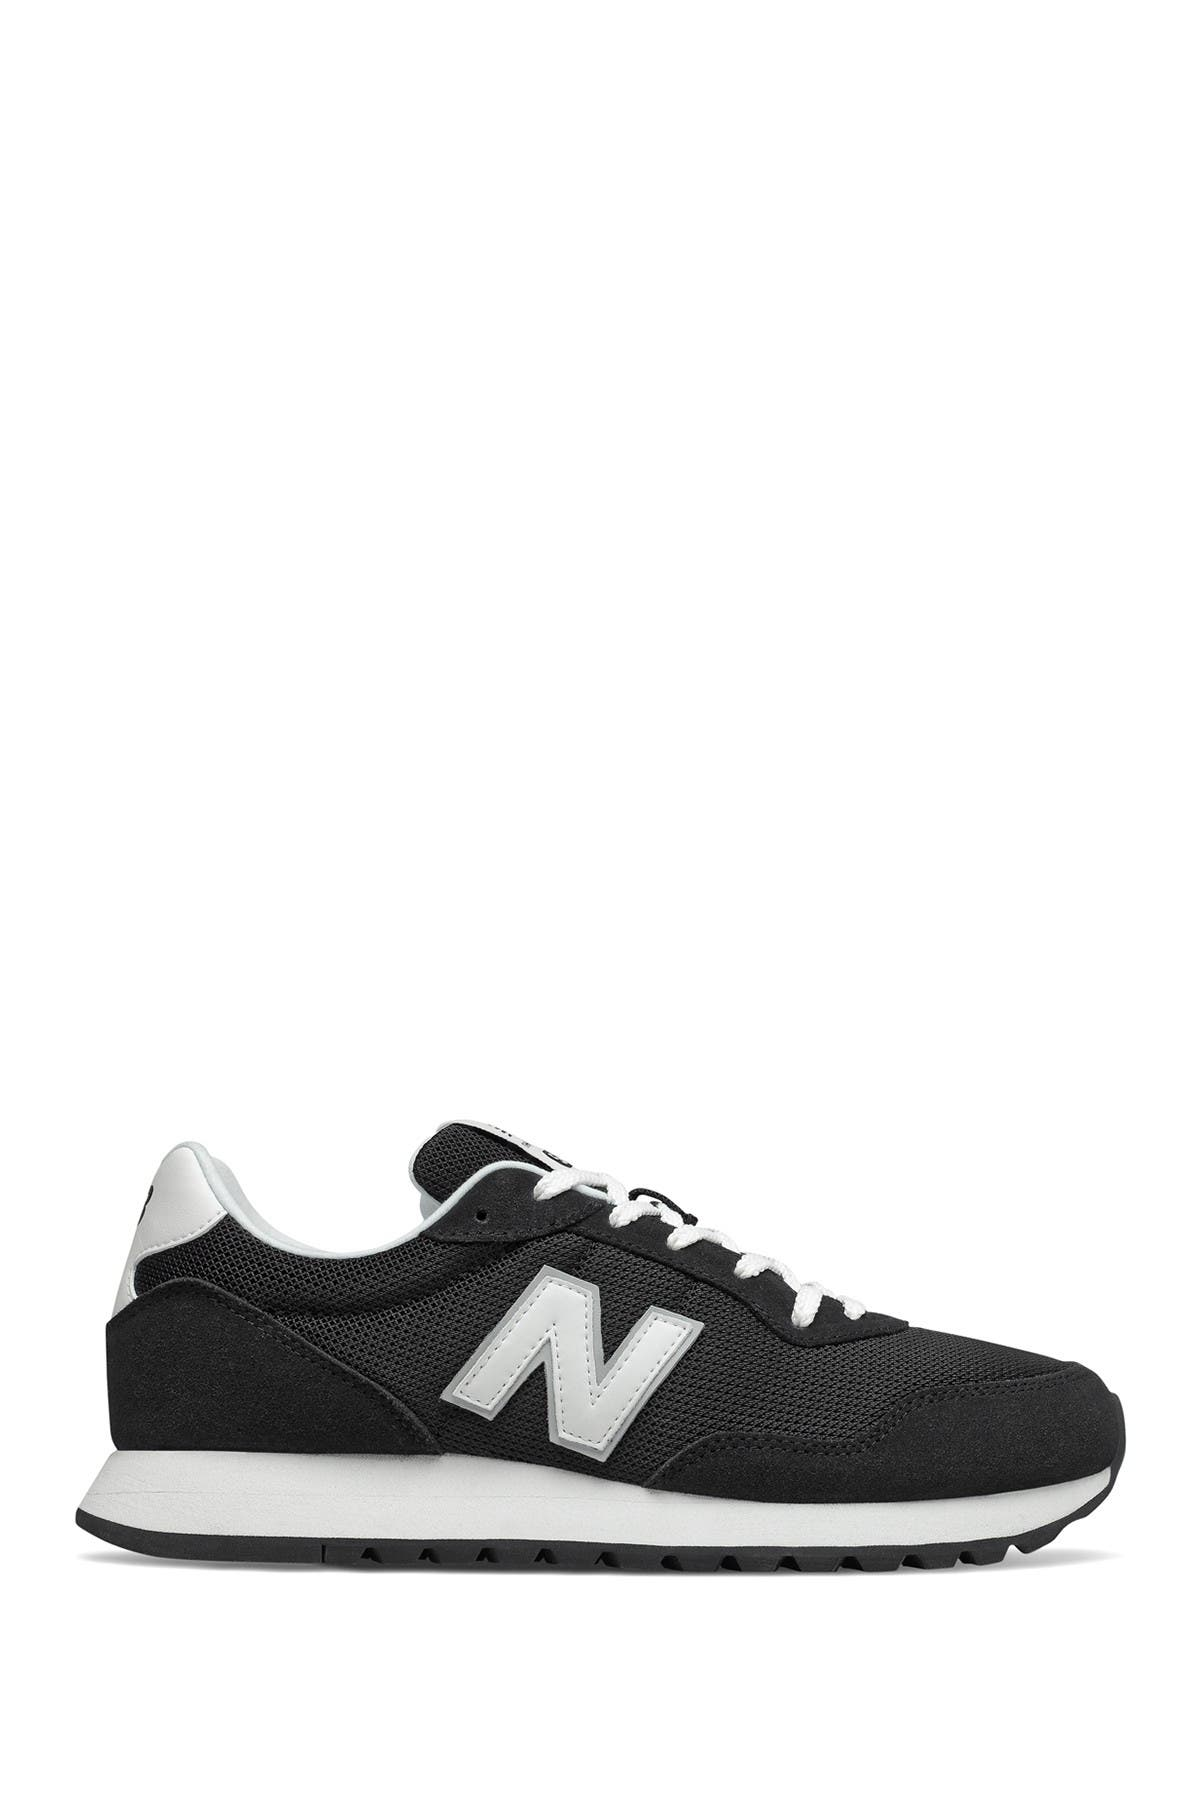 Image of New Balance 527 Classic Sneaker